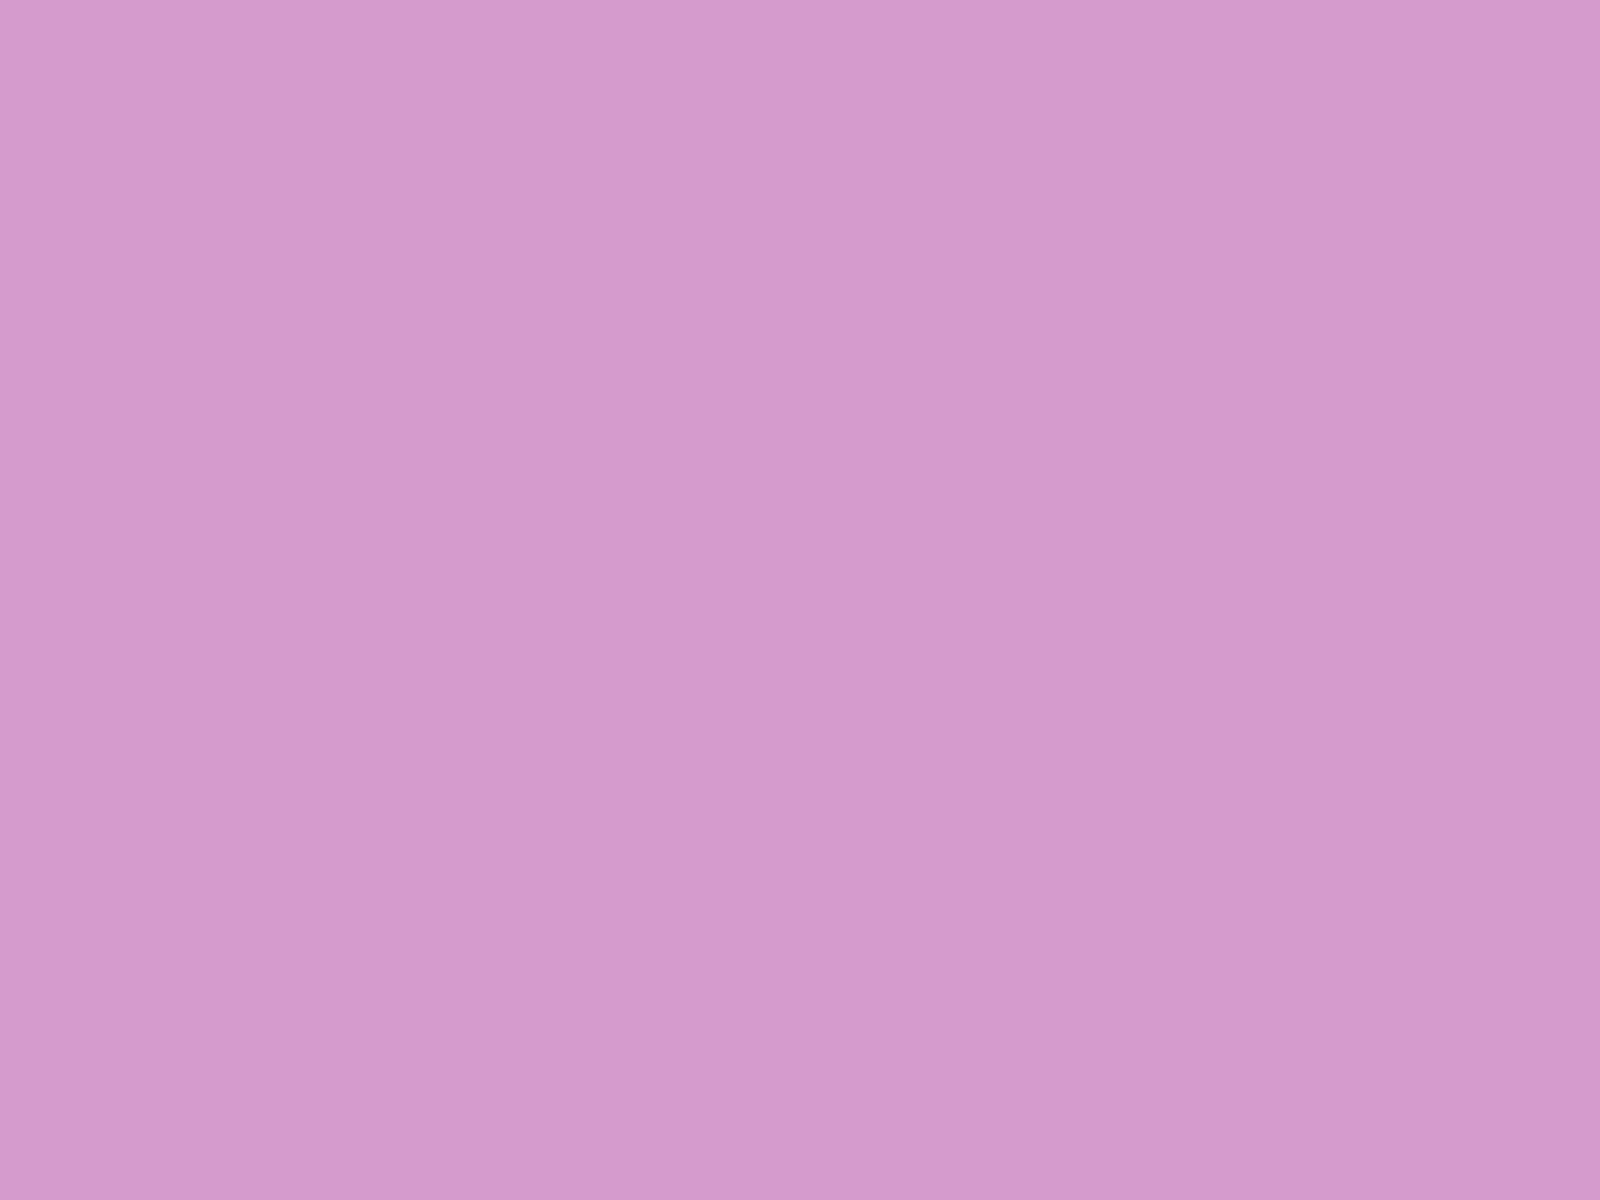 1600x1200 Light Medium Orchid Solid Color Background